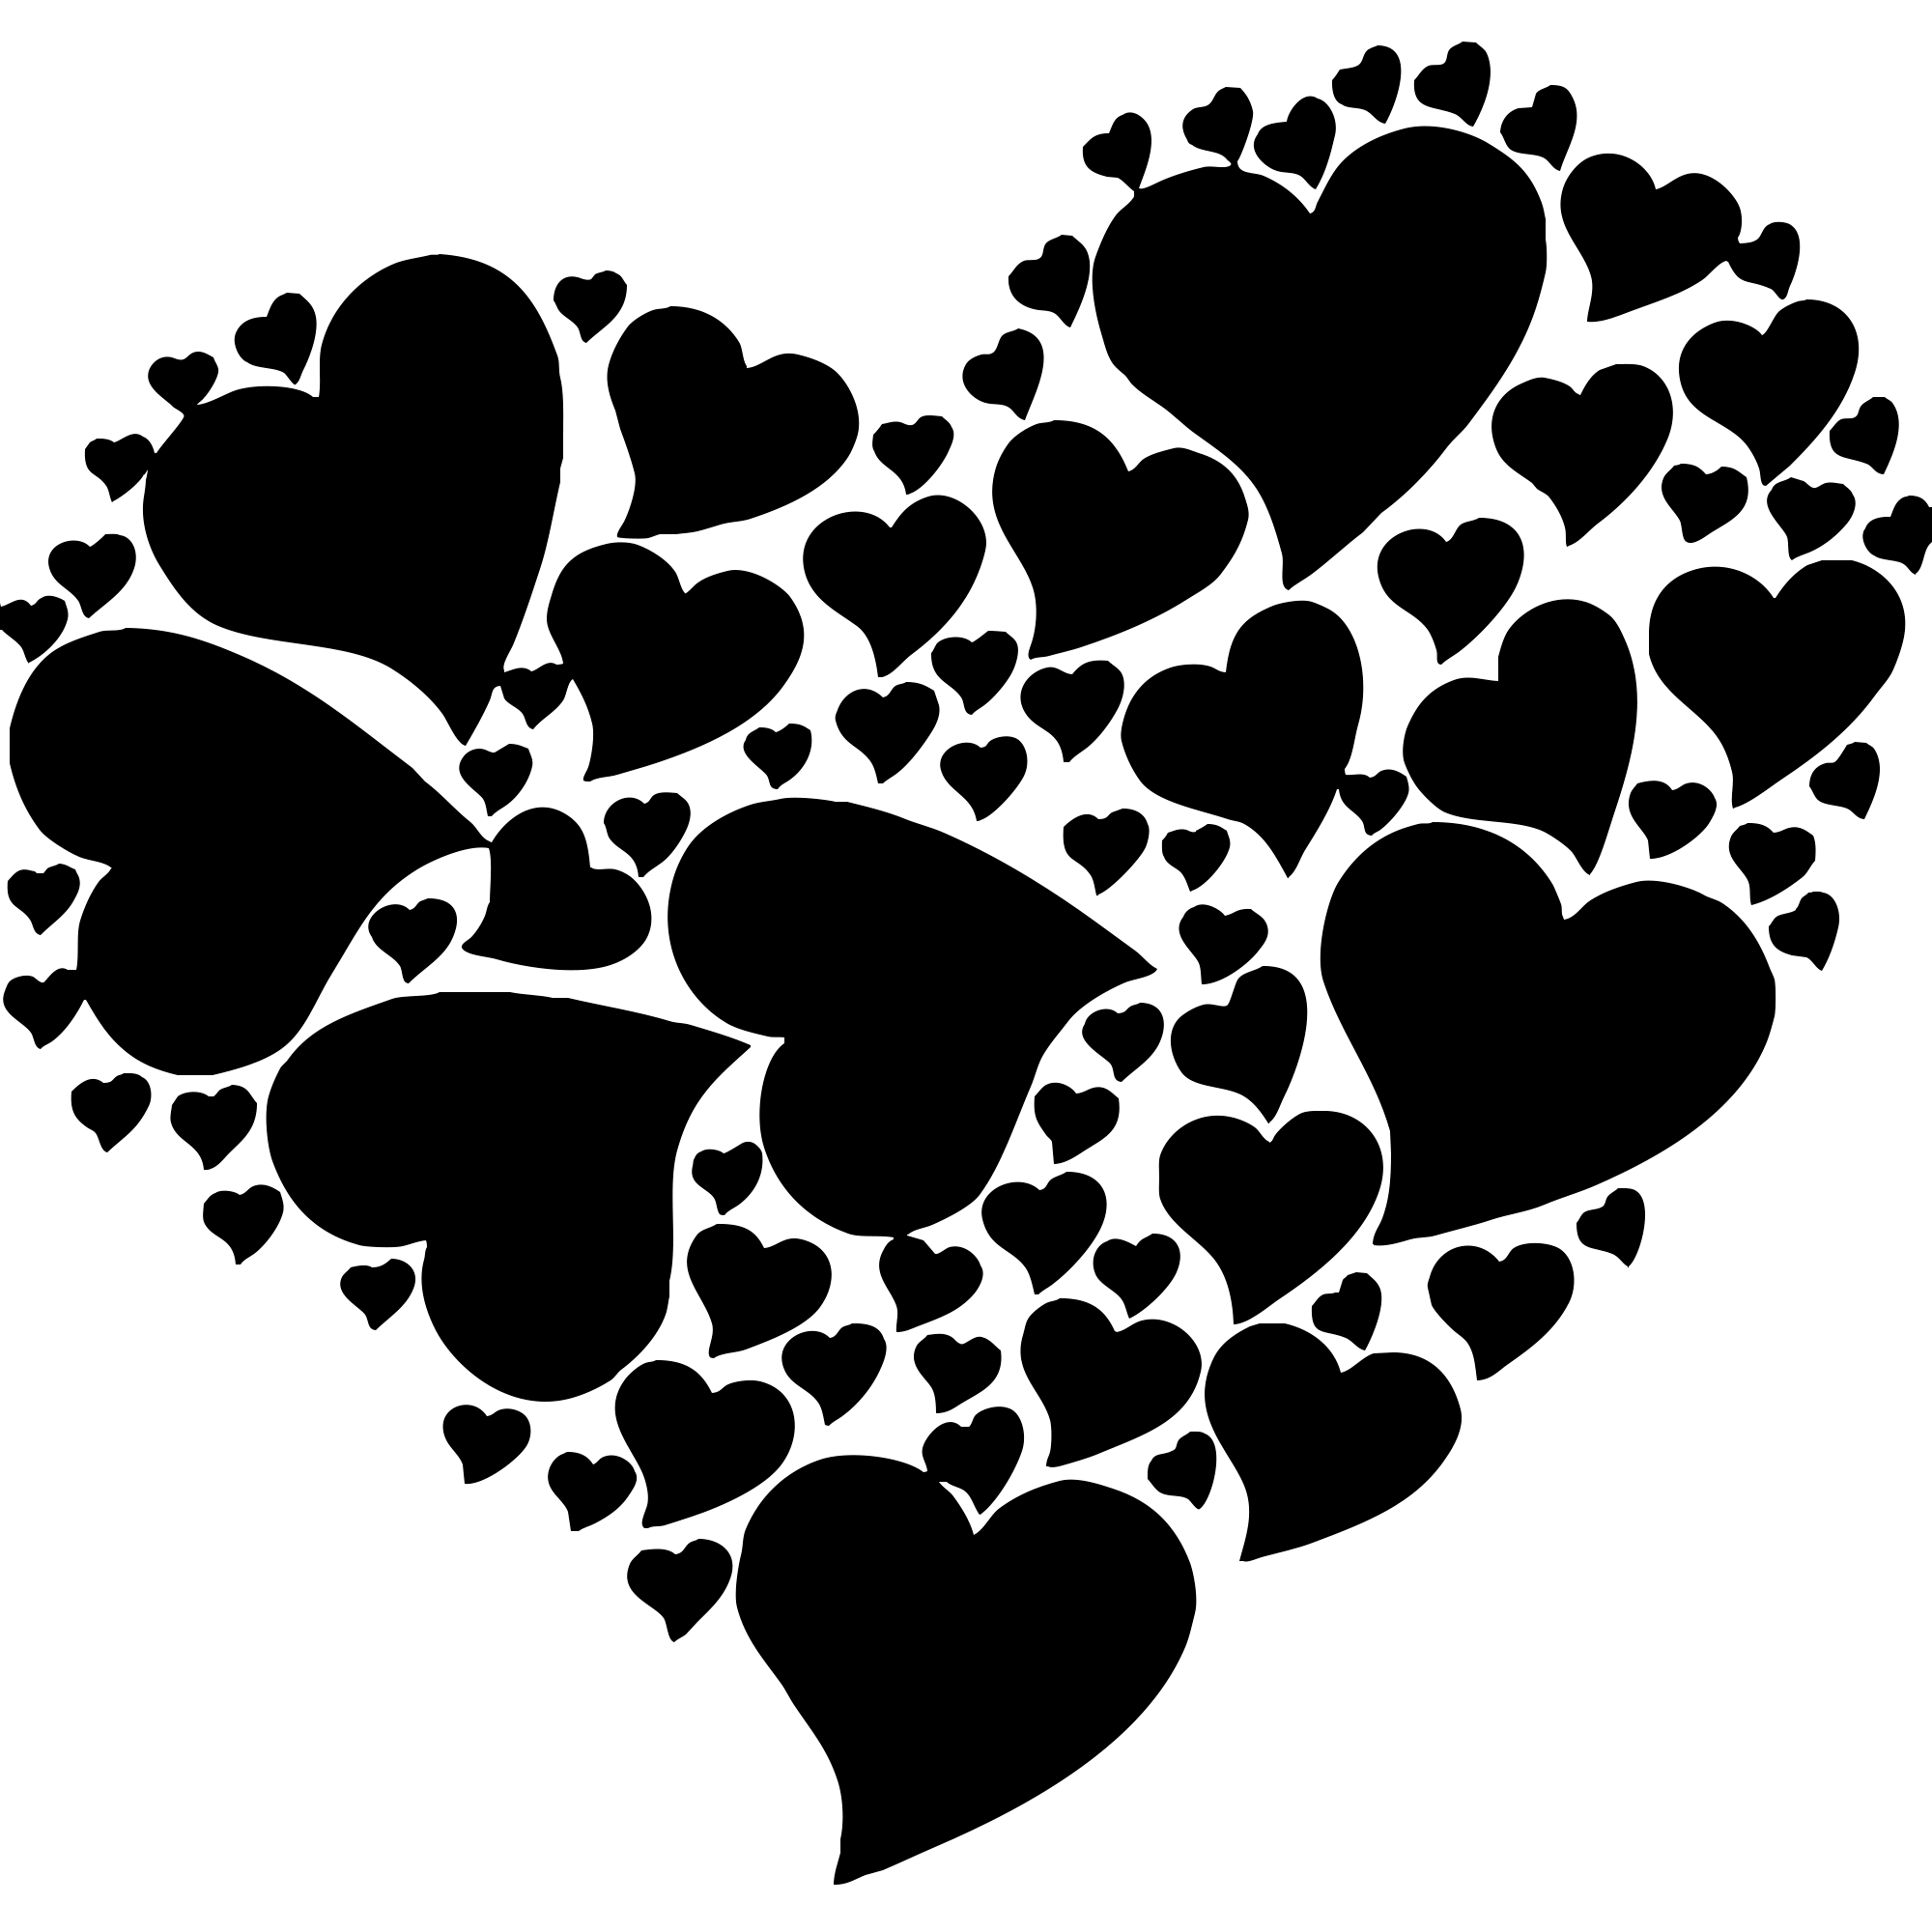 printable heart pictures free printable large heart shape templates simple mom pictures printable heart